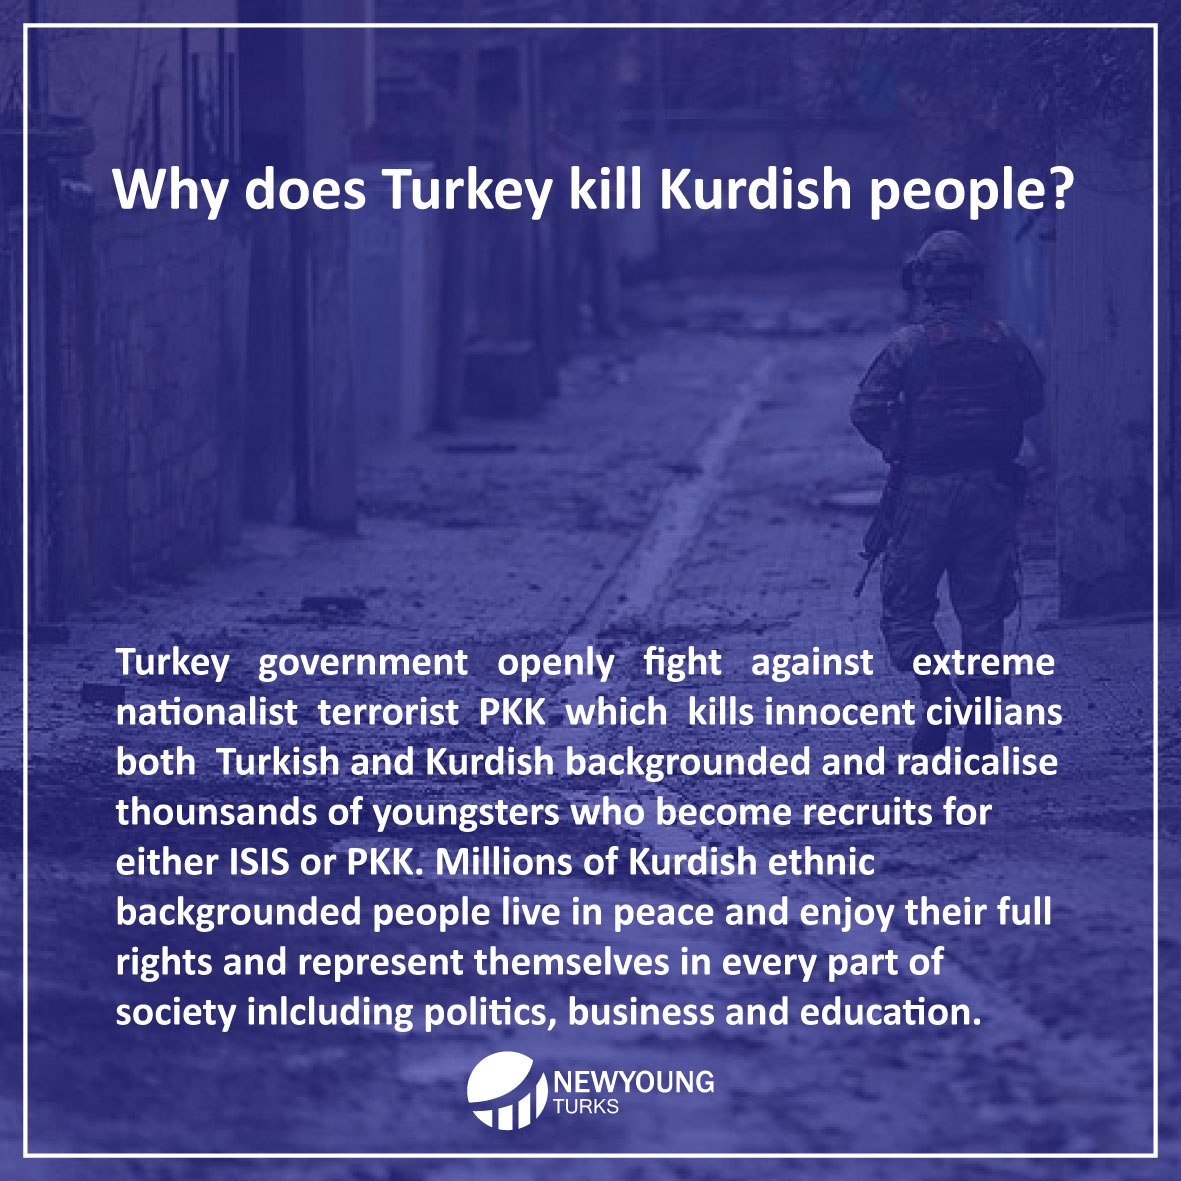 Why does Turkey kill kurdish people